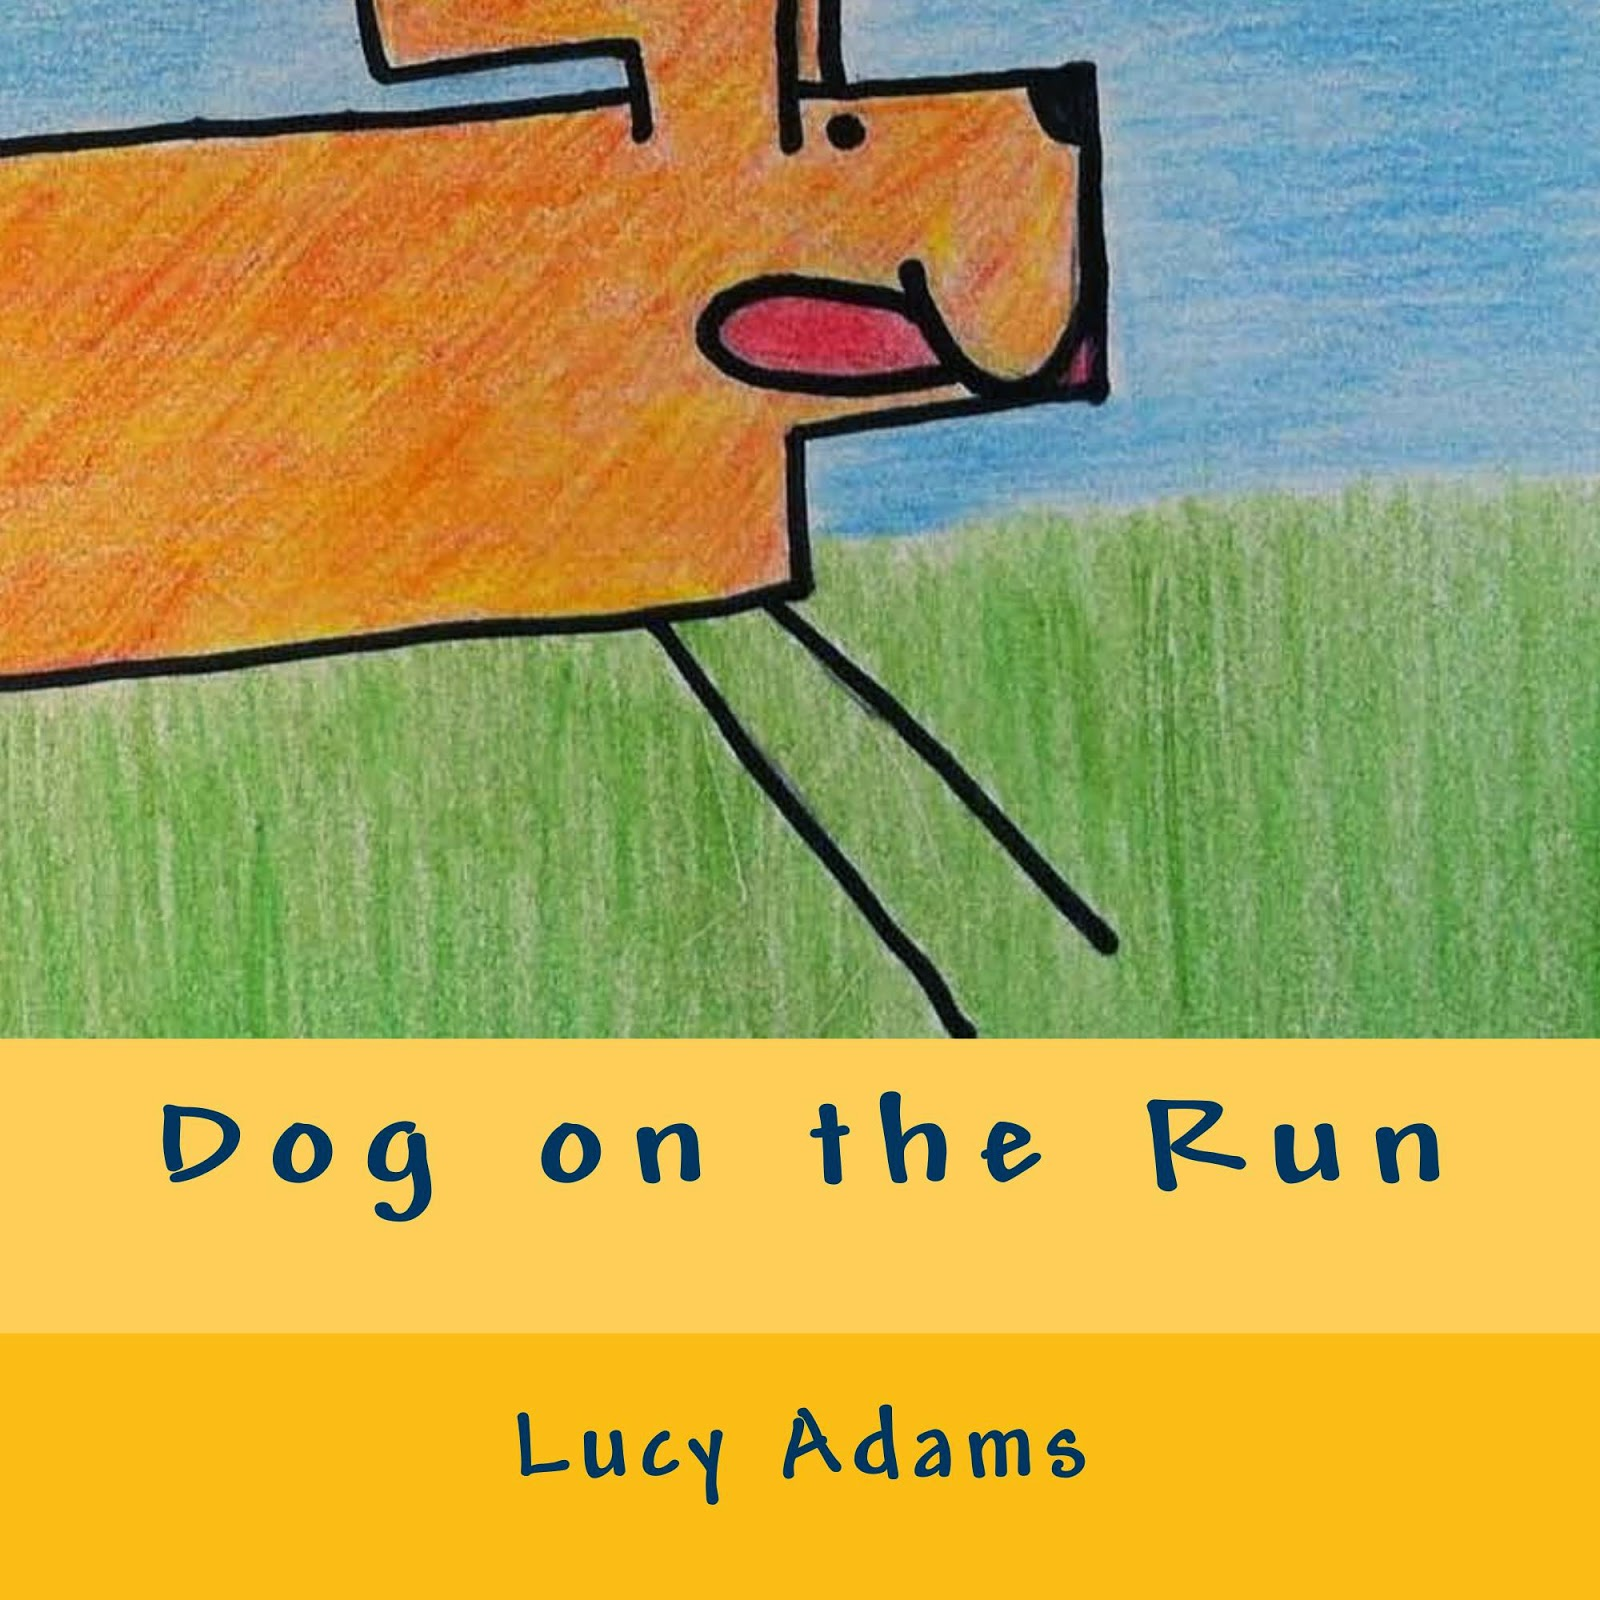 http://www.amazon.com/Dog-Run-Lucy-Adams/dp/1500671215/ref=sr_1_12?s=books&ie=UTF8&qid=1412272279&sr=1-12&keywords=Dog+on+the+Run